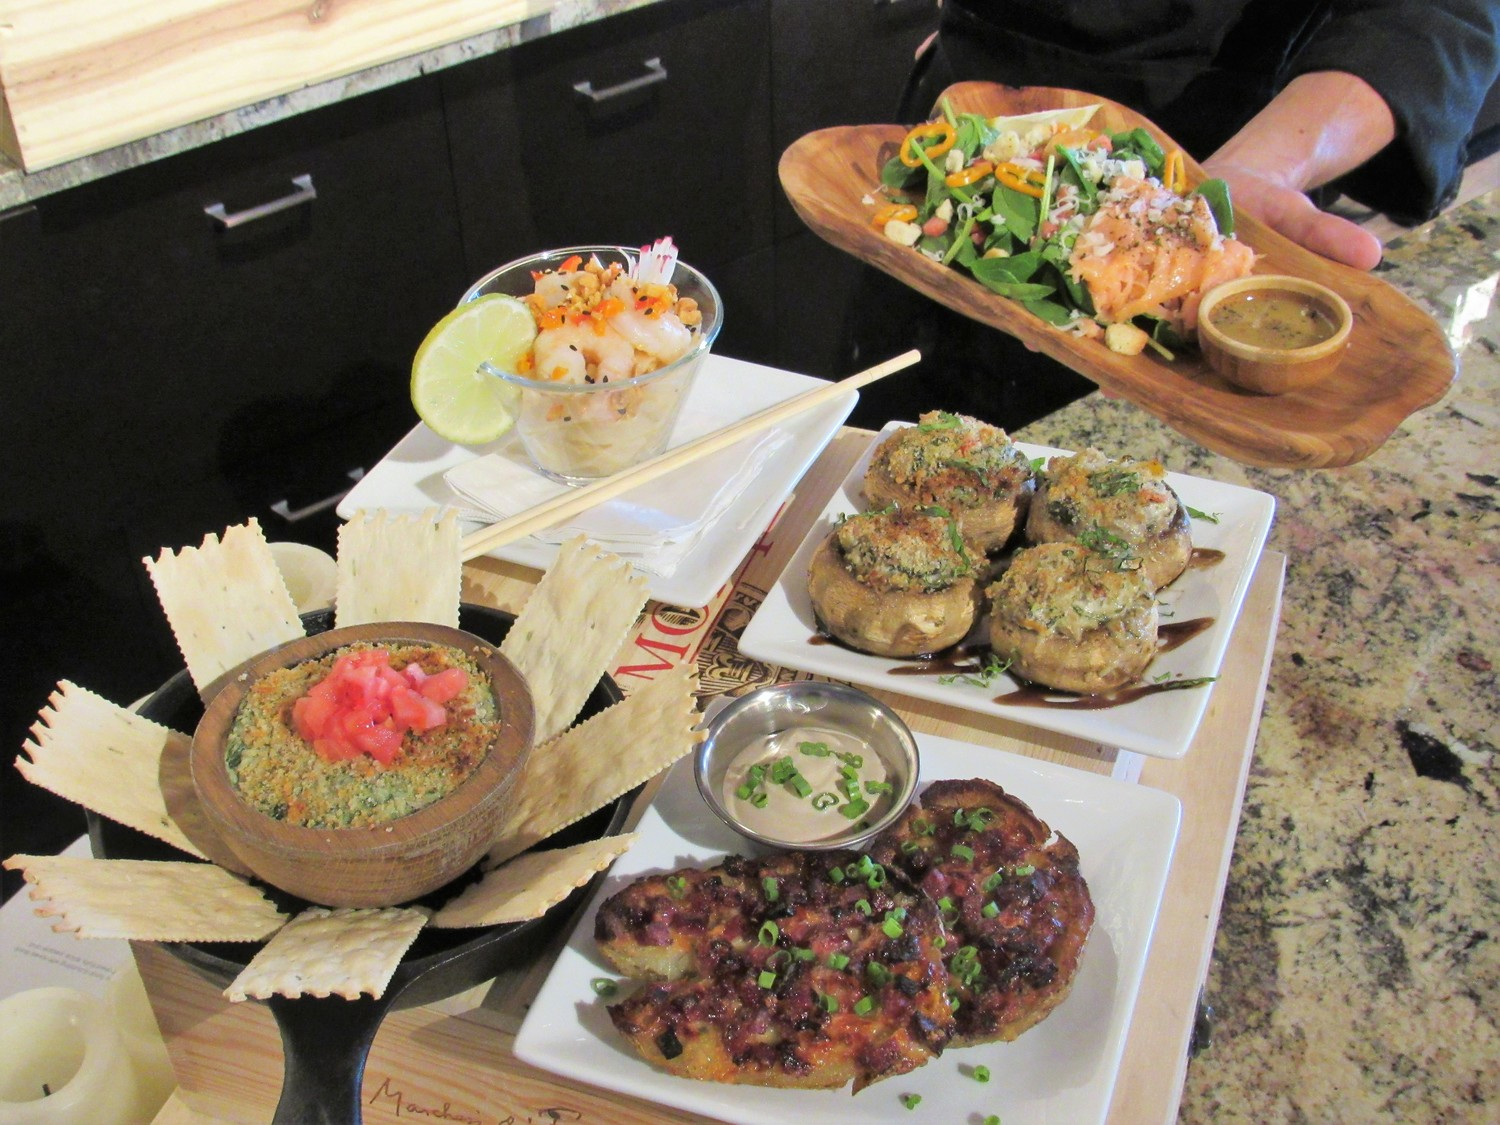 Menu offerings include the Tuscan spinach dip, shrimp pad Thai, Coastal Wine wedges, Rustic stuffed mushrooms and spinach salad with honey dijon vinaigrette.